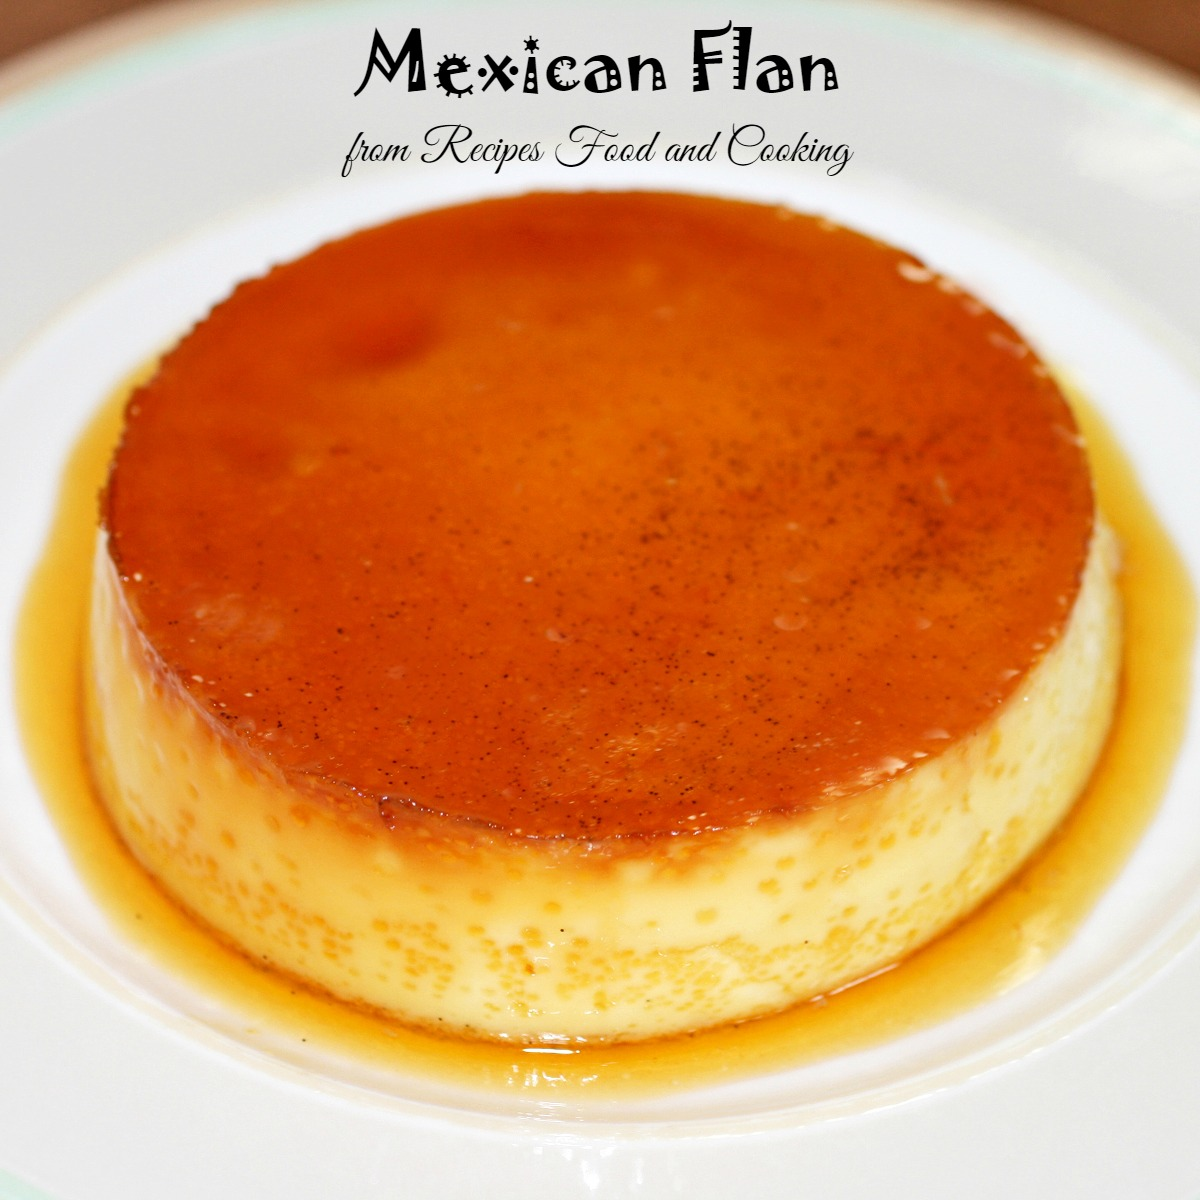 Creamy and smooth Mexican Flan with a caramel sauce.